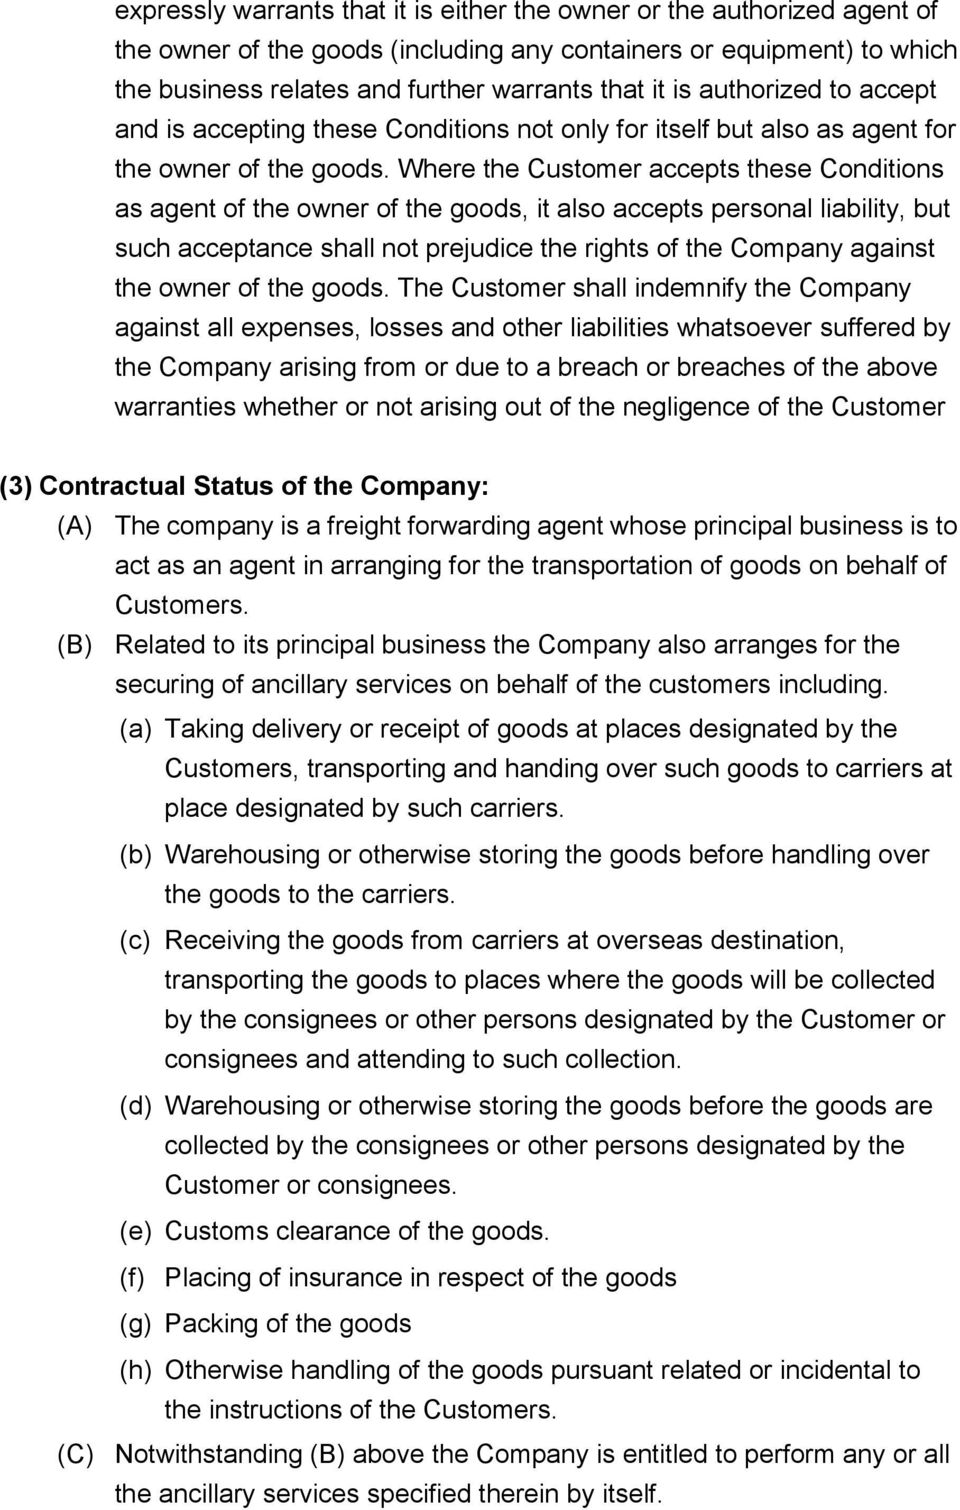 Where the Customer accepts these Conditions as agent of the owner of the goods, it also accepts personal liability, but such acceptance shall not prejudice the rights of the Company against the owner